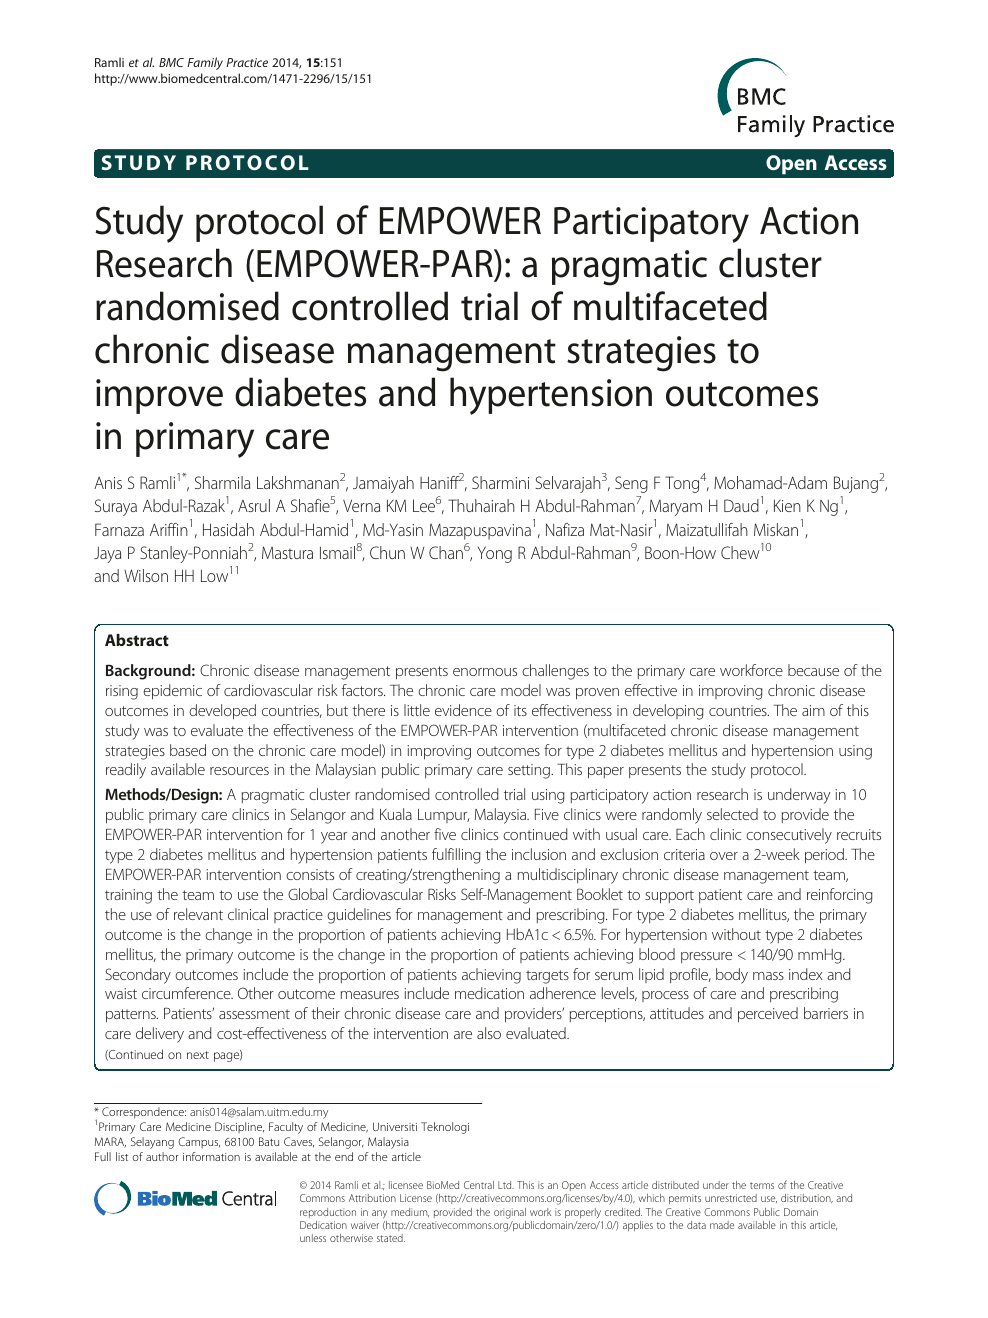 Study protocol of EMPOWER Participatory Action Research